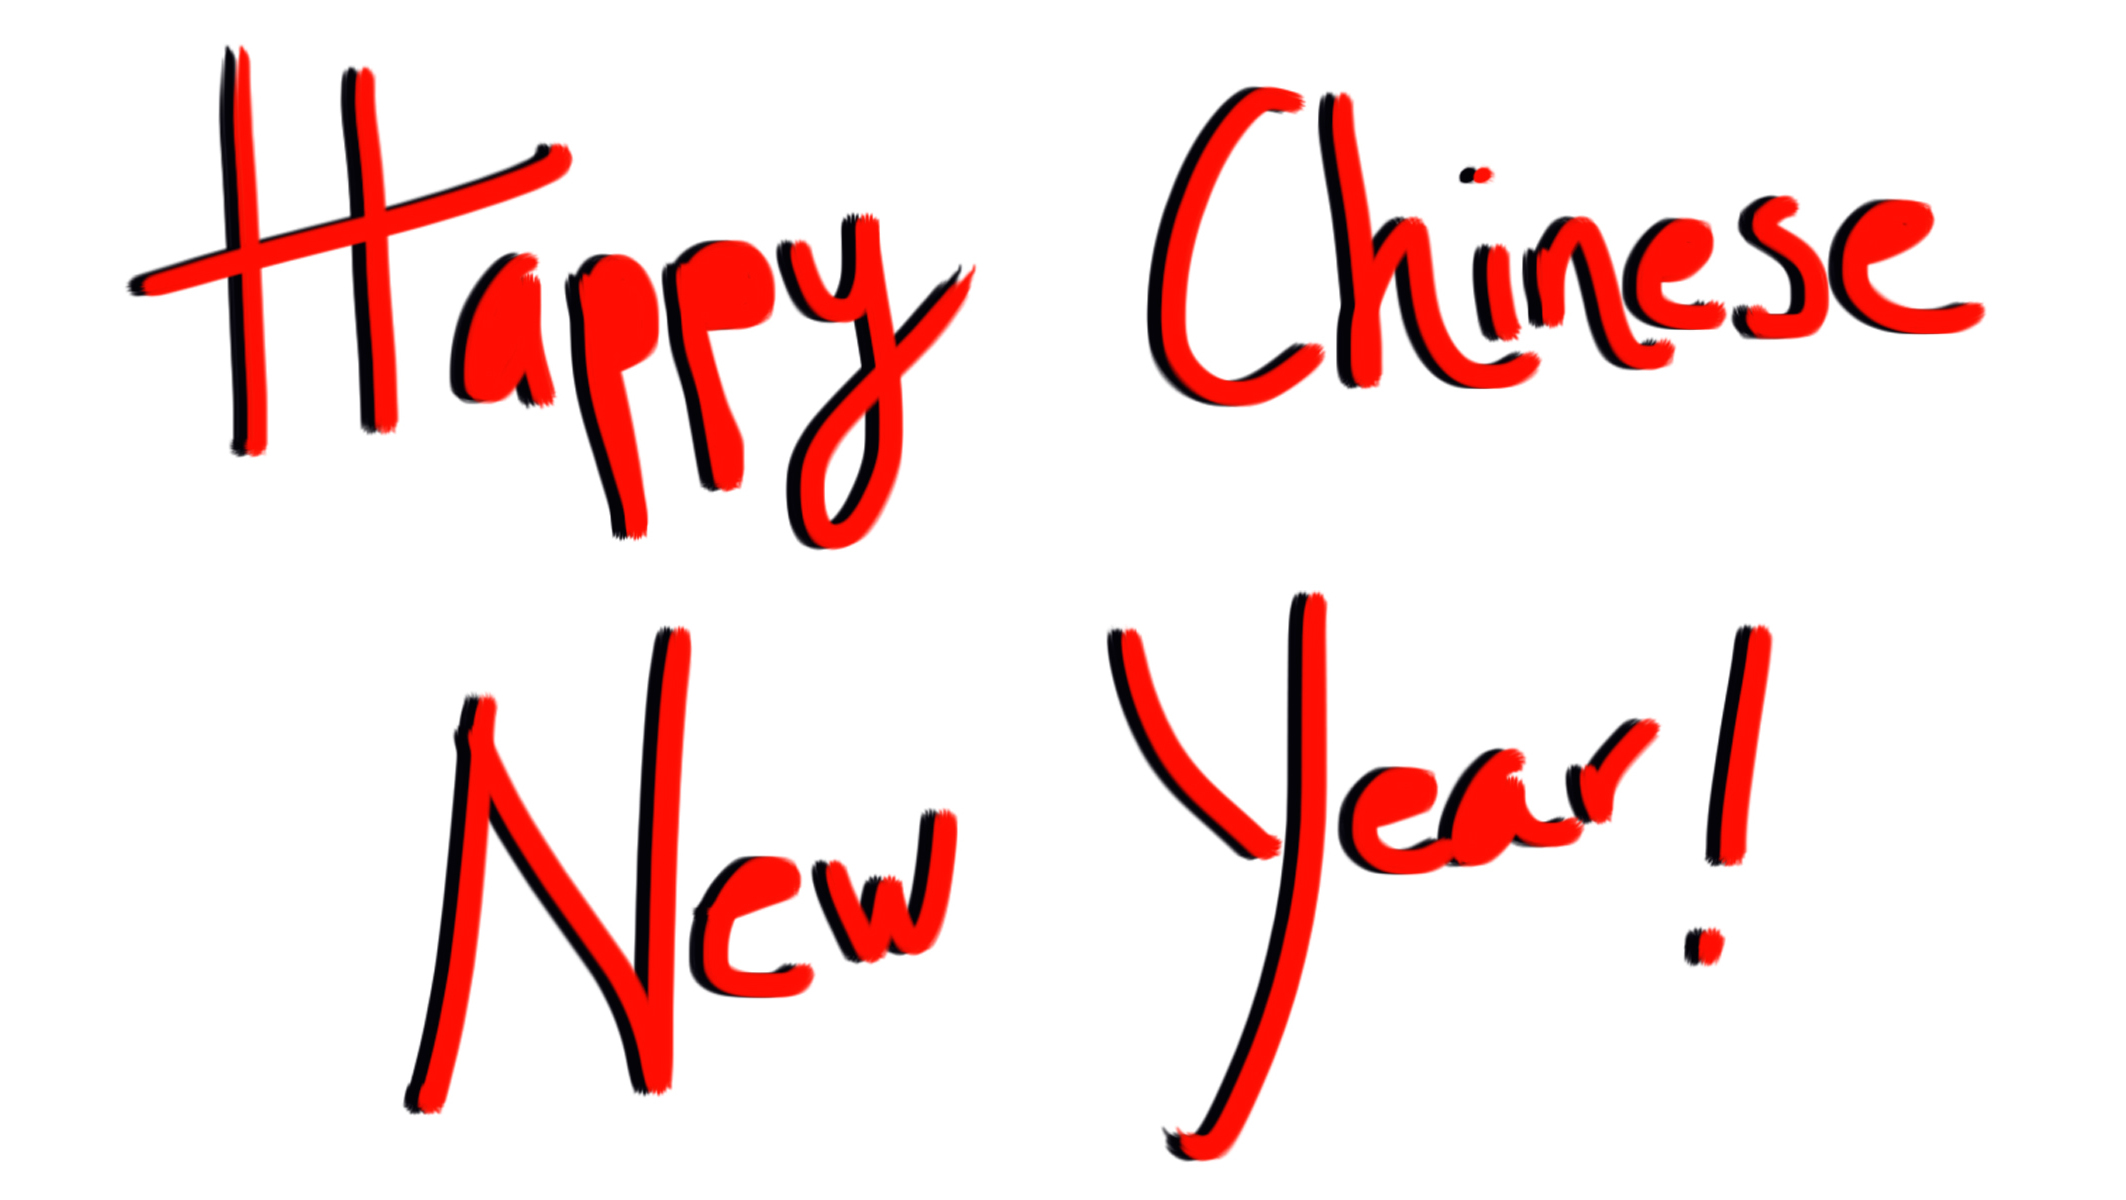 chines new year lettering2.jpg